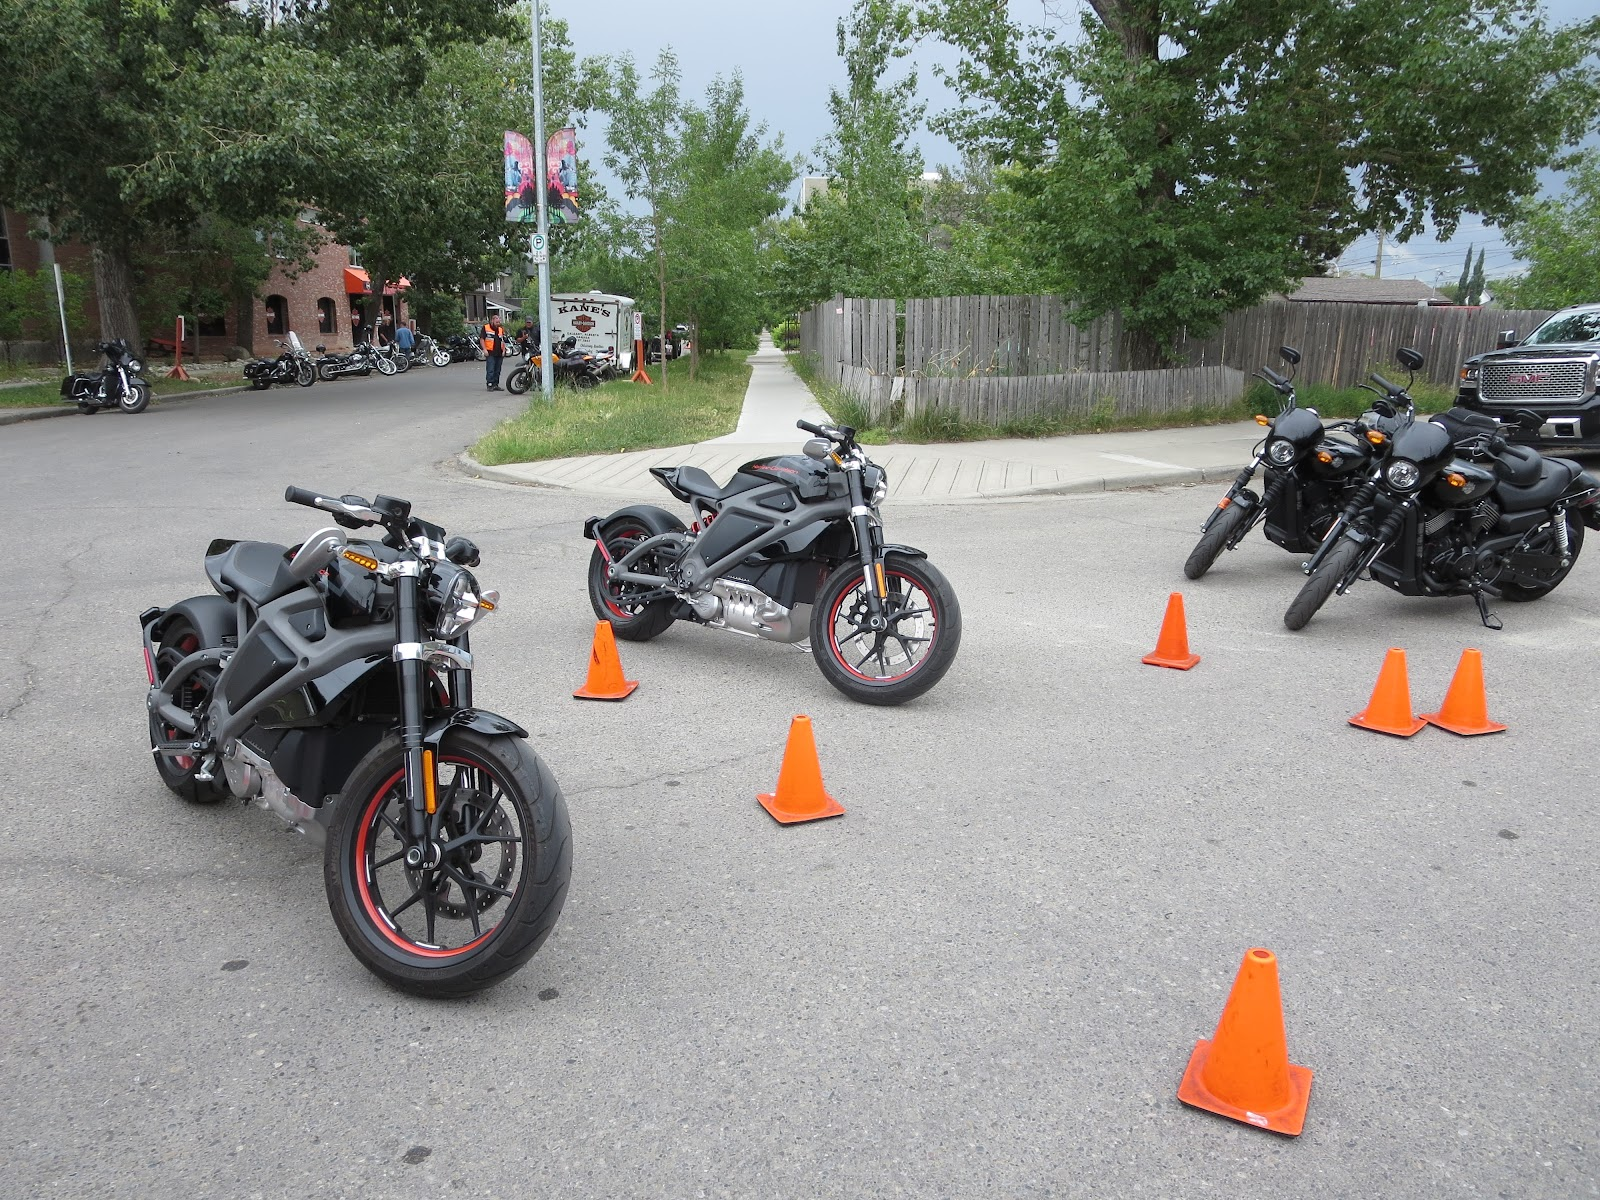 Astonishing Oddbike Oddbike Road Test Harley Davidson Livewire Caraccident5 Cool Chair Designs And Ideas Caraccident5Info